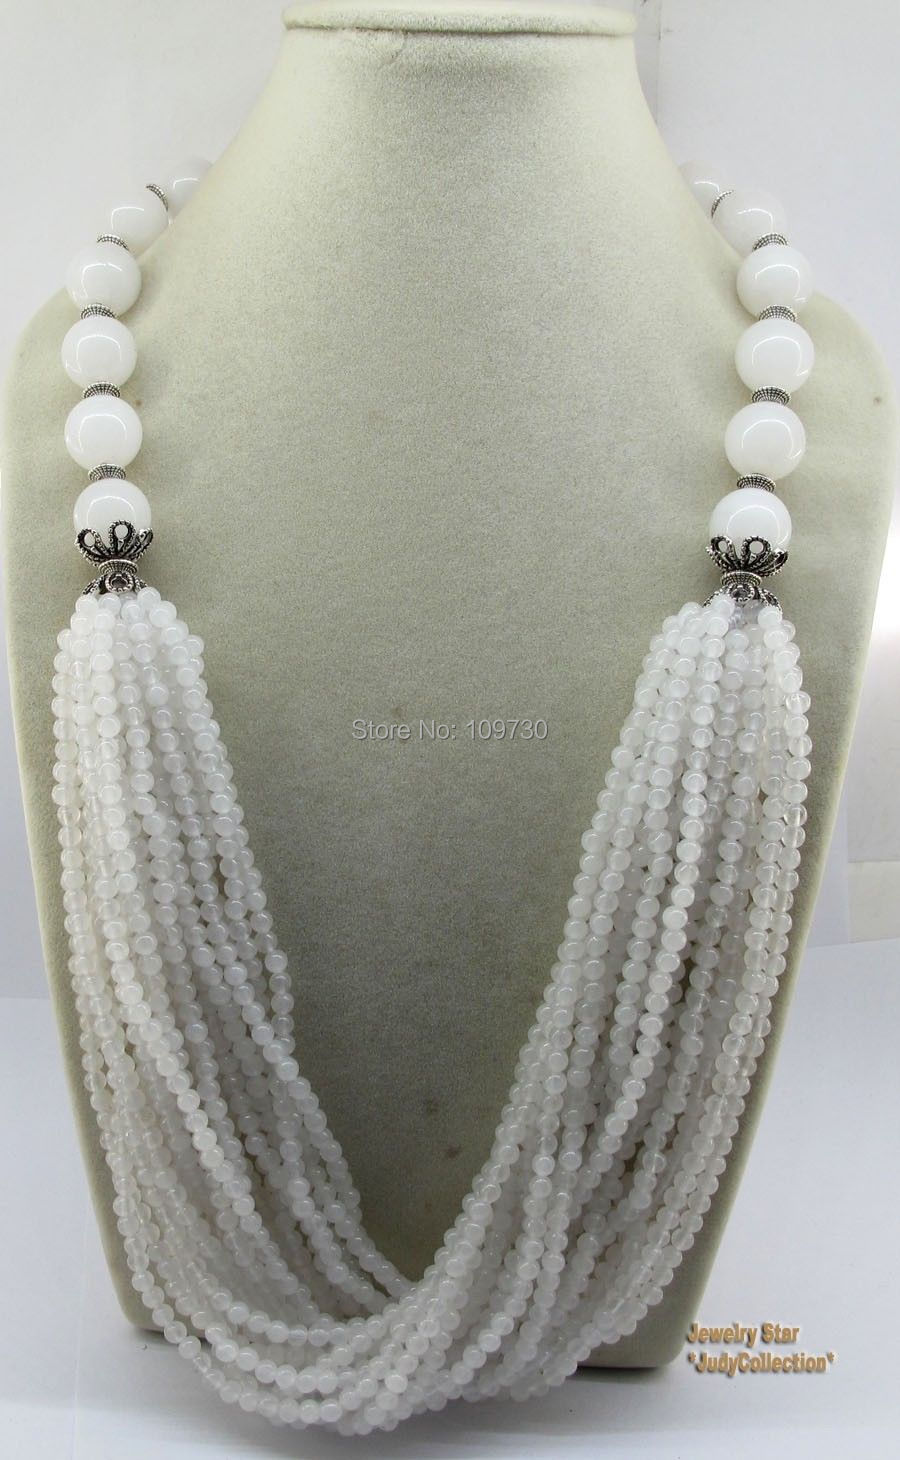 00945 Wow!! Wonderful Bride&Party Jewelry Gem Stone White Jade Necklace(China (Mainland))